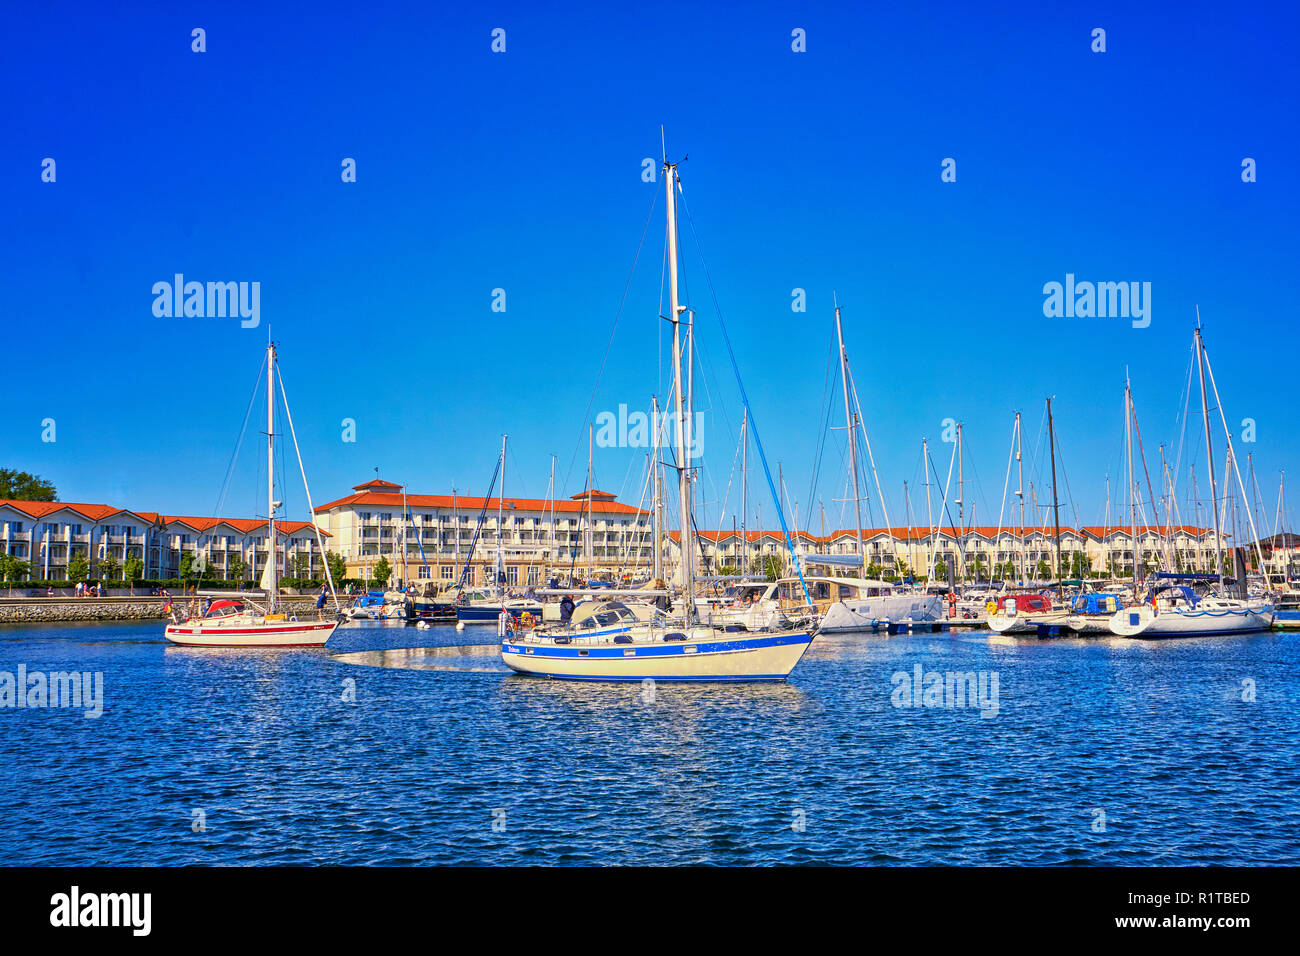 Holiday resort with sailboats in the harbor Weiße Wiek. - Stock Image